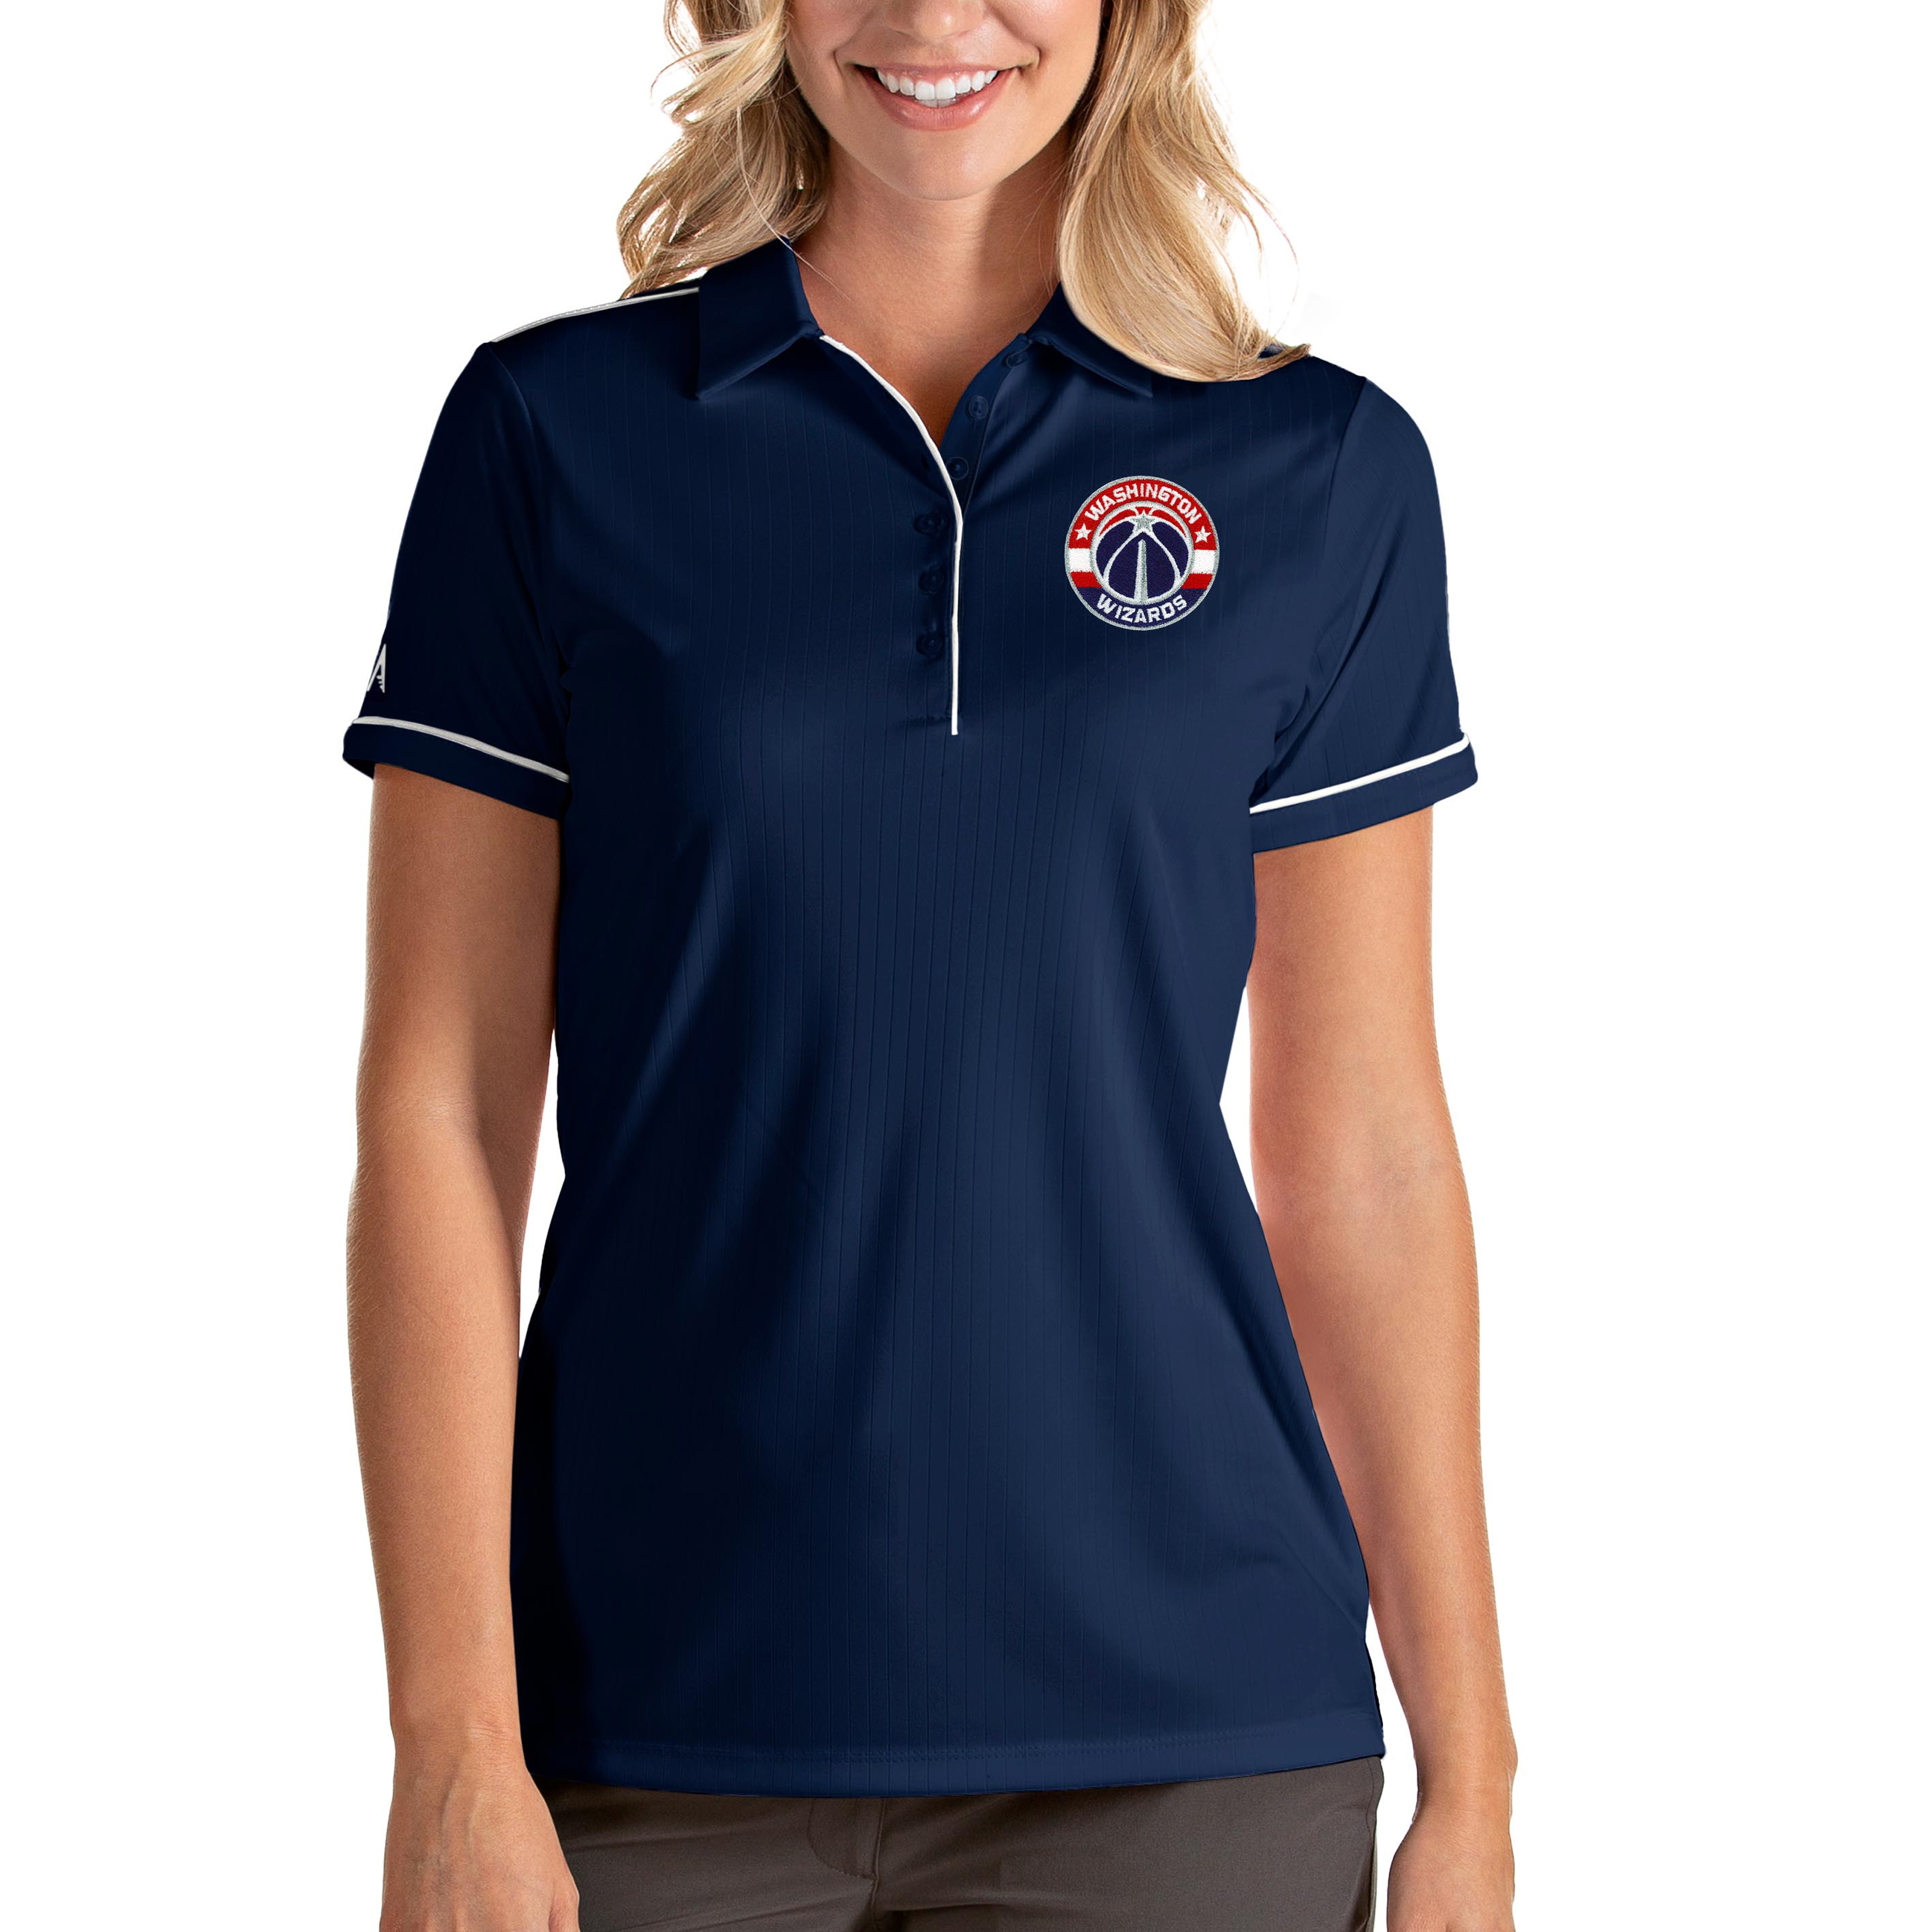 Washington Wizards Antigua Women's Salute Polo - Navy/White